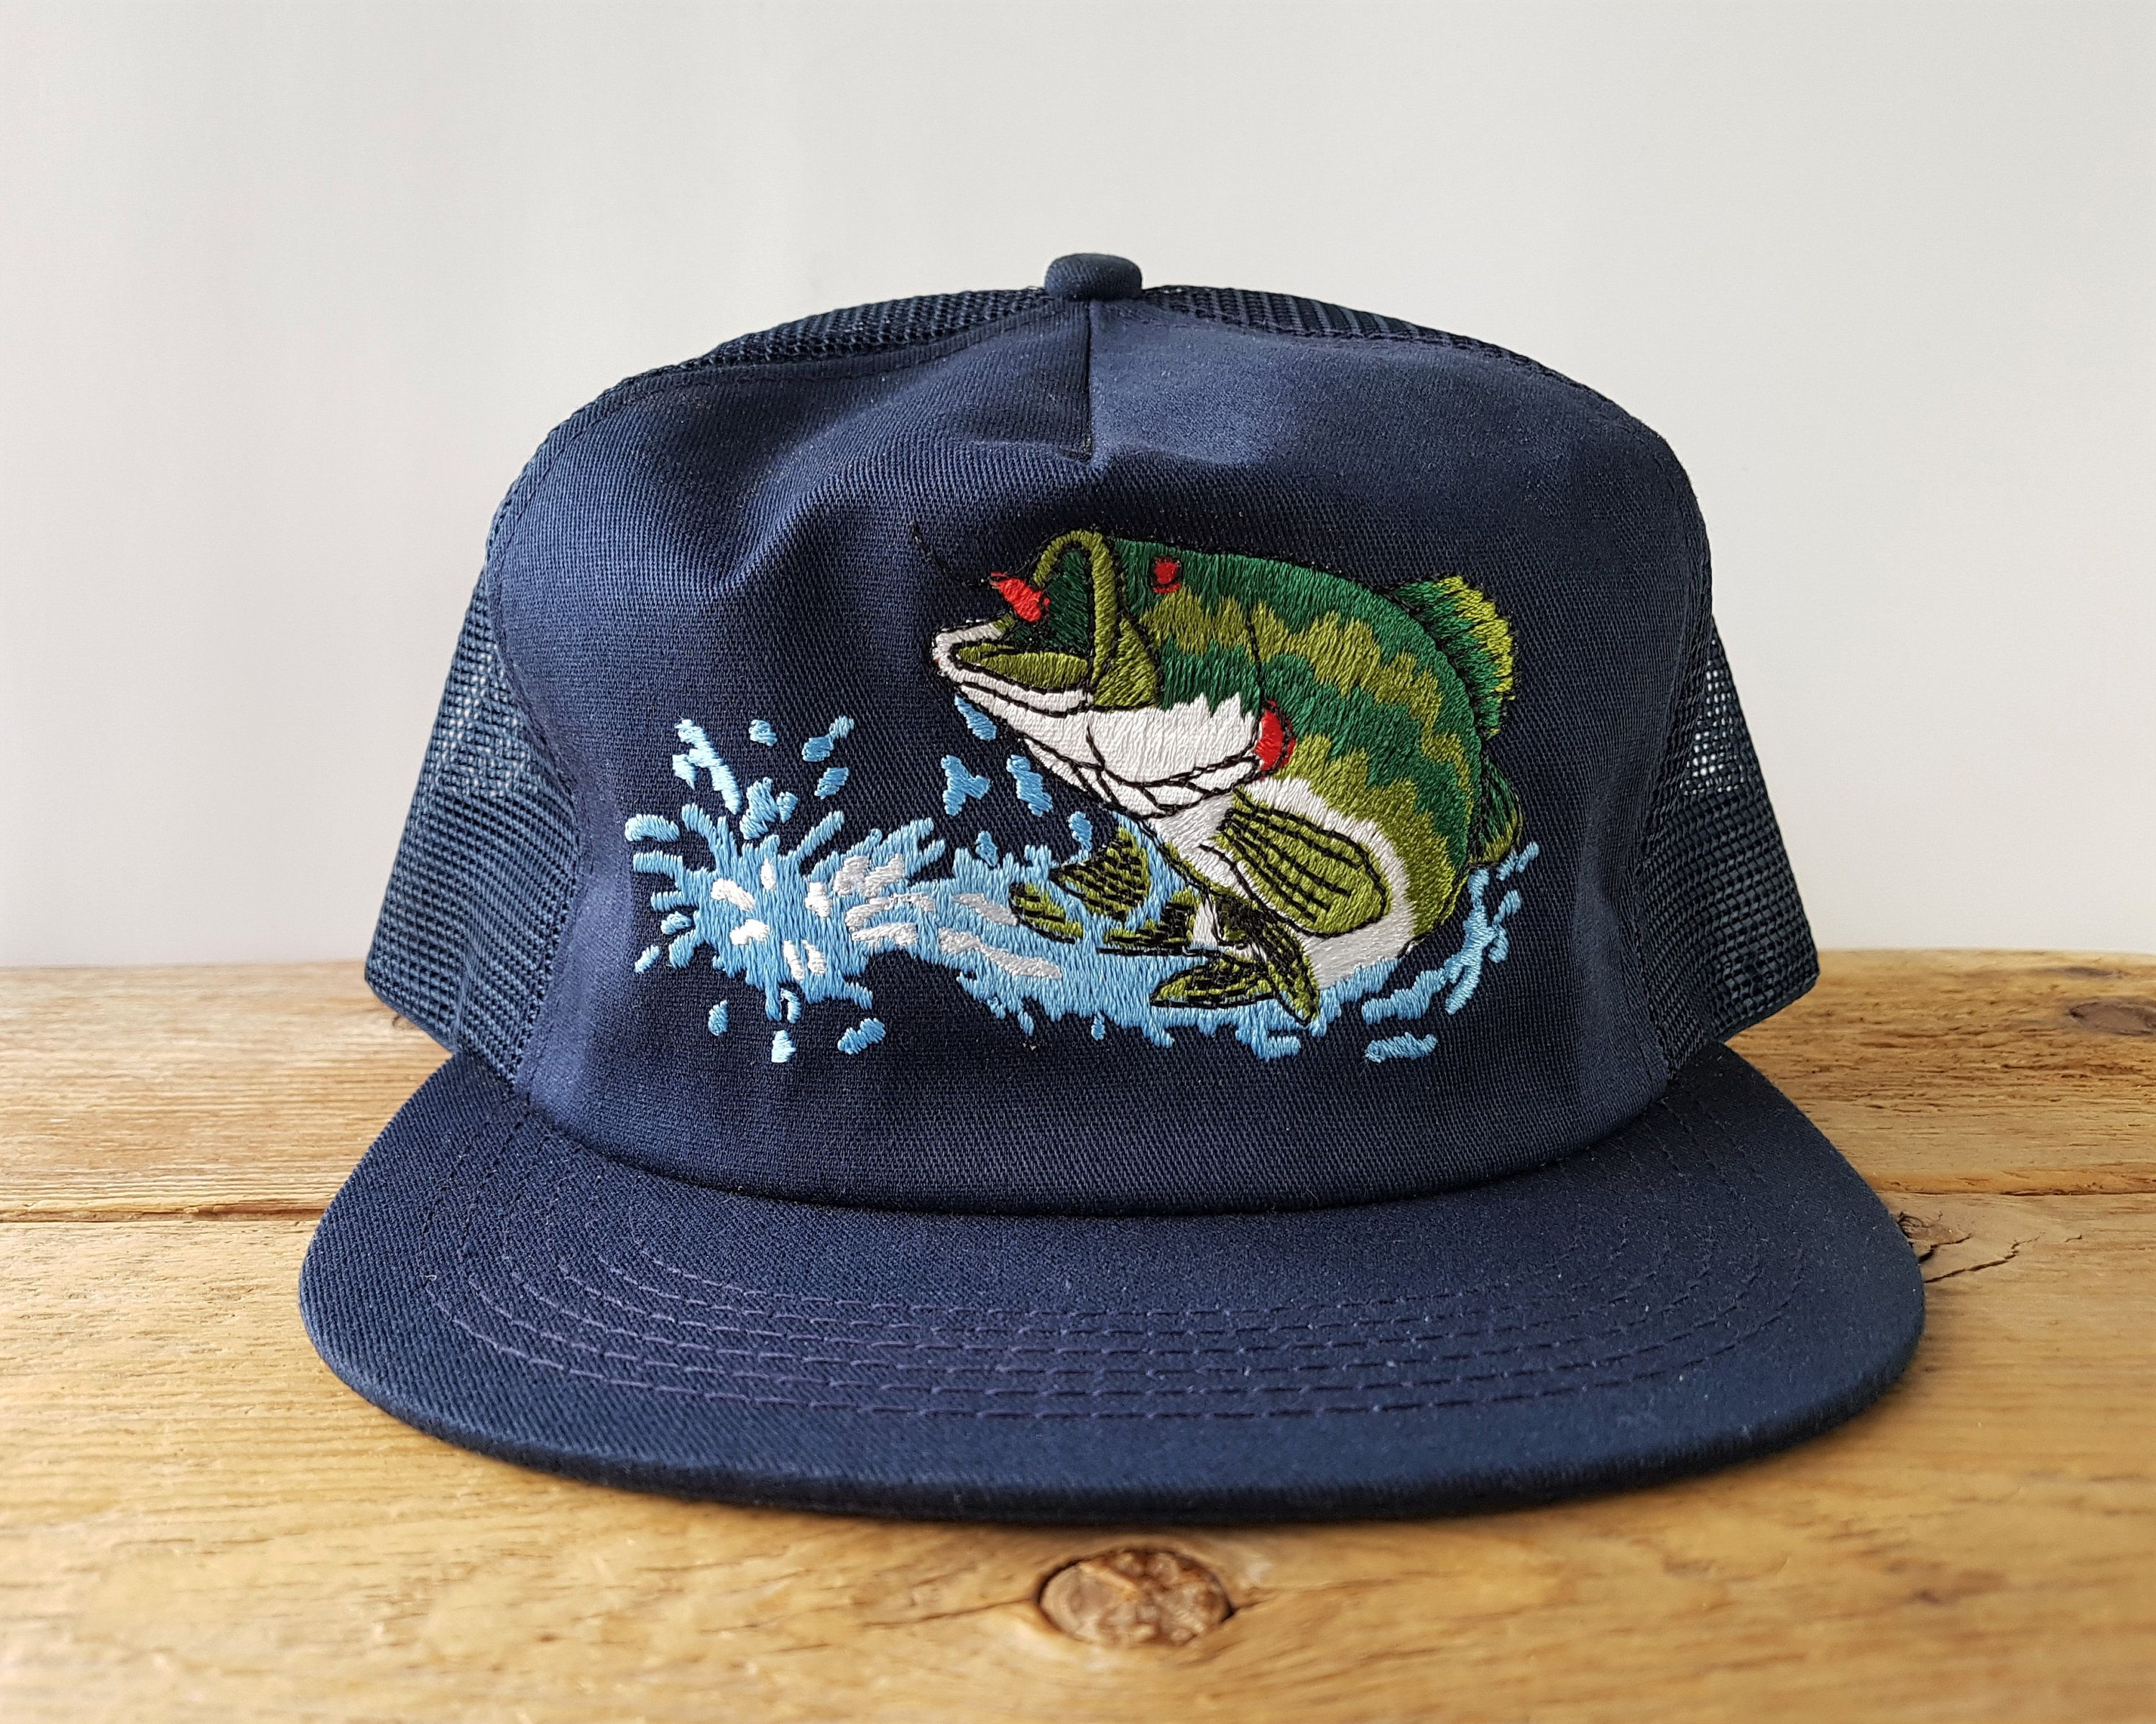 Vintage Largemouth Bass Trucker Hat K Products Made In Usa Fishing Mesh Snapback Baseball Cap Emboidered Freshwater Fish Deadstock Nos Vintage Trucker Hats Hats Trucker Hat